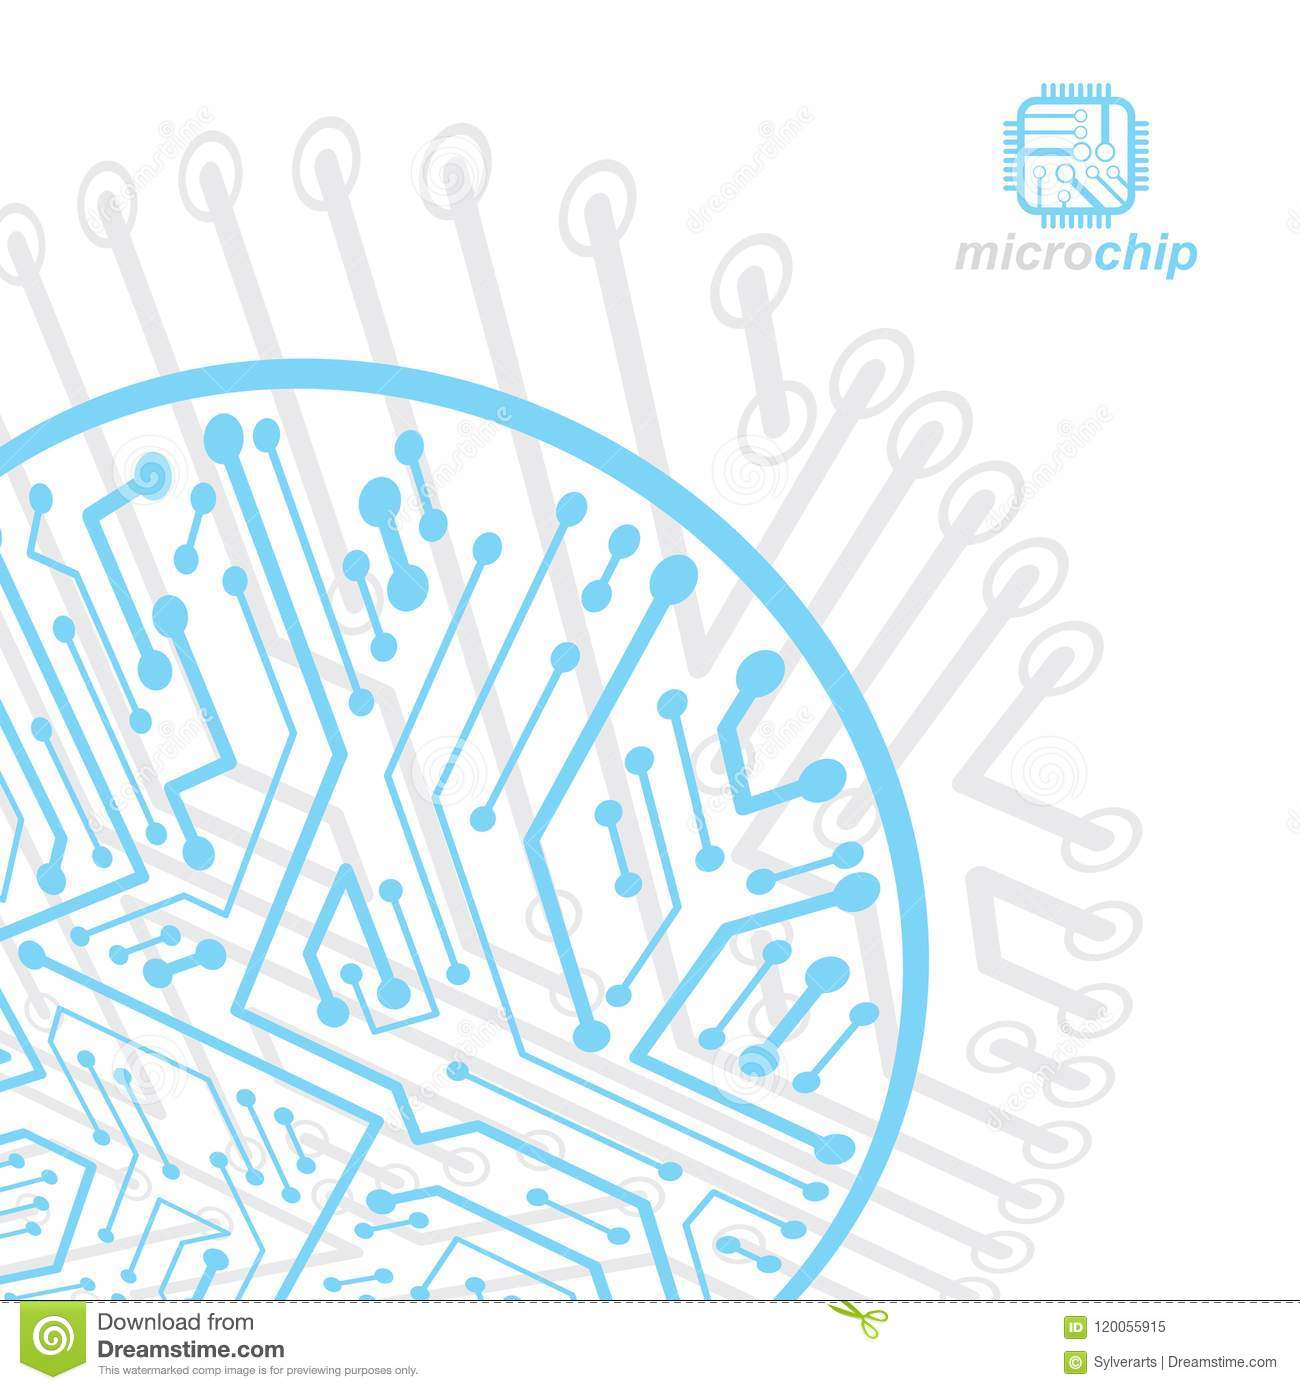 Vector Abstract Computer Circuit Board Illustration Technology